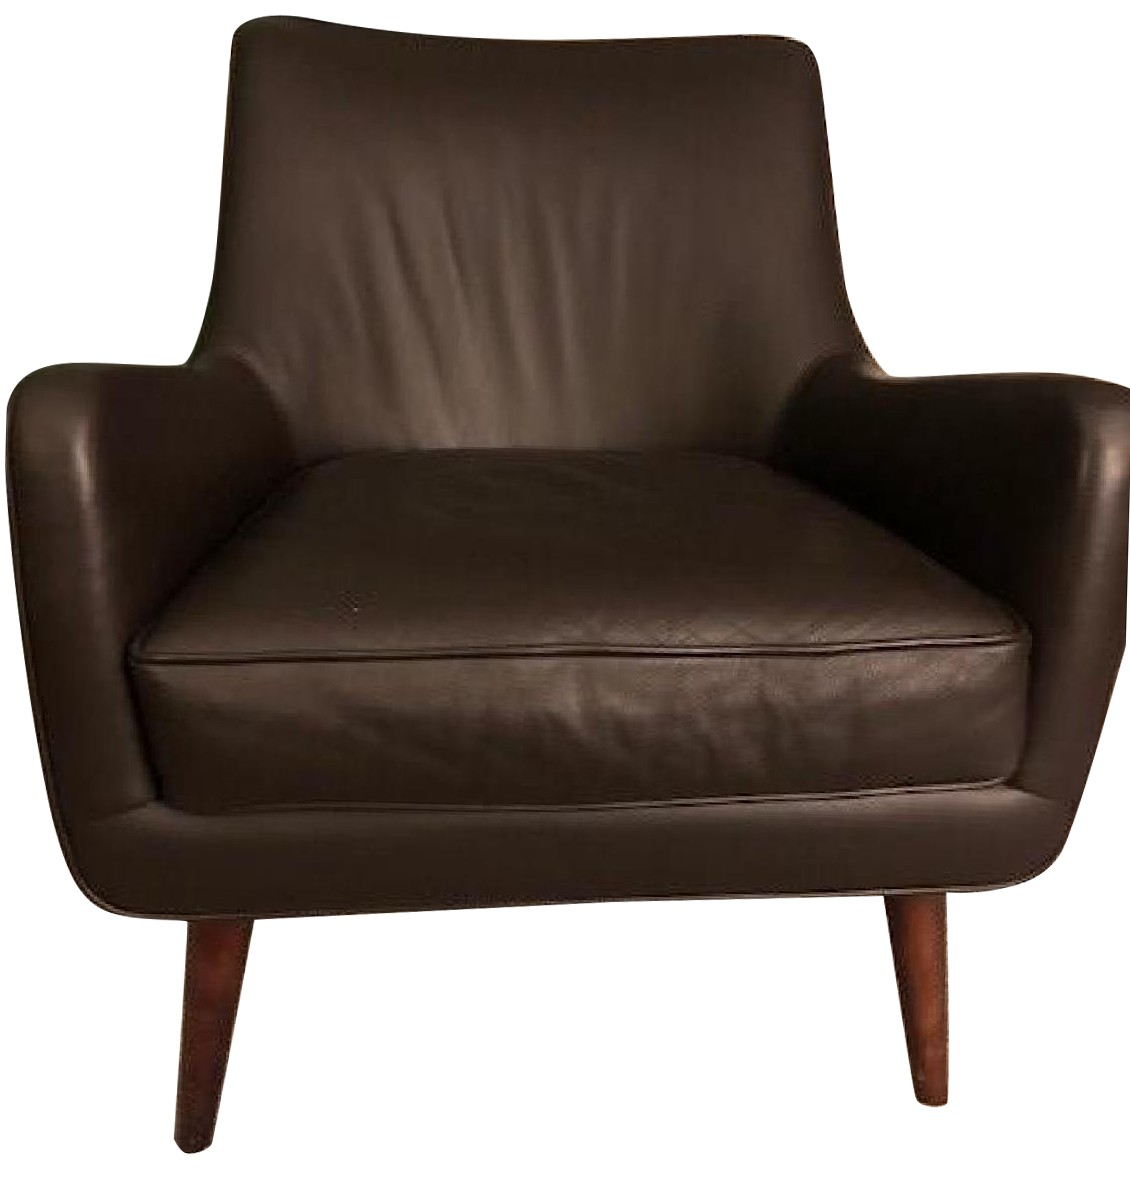 Room & Board Brown Leather Chairs